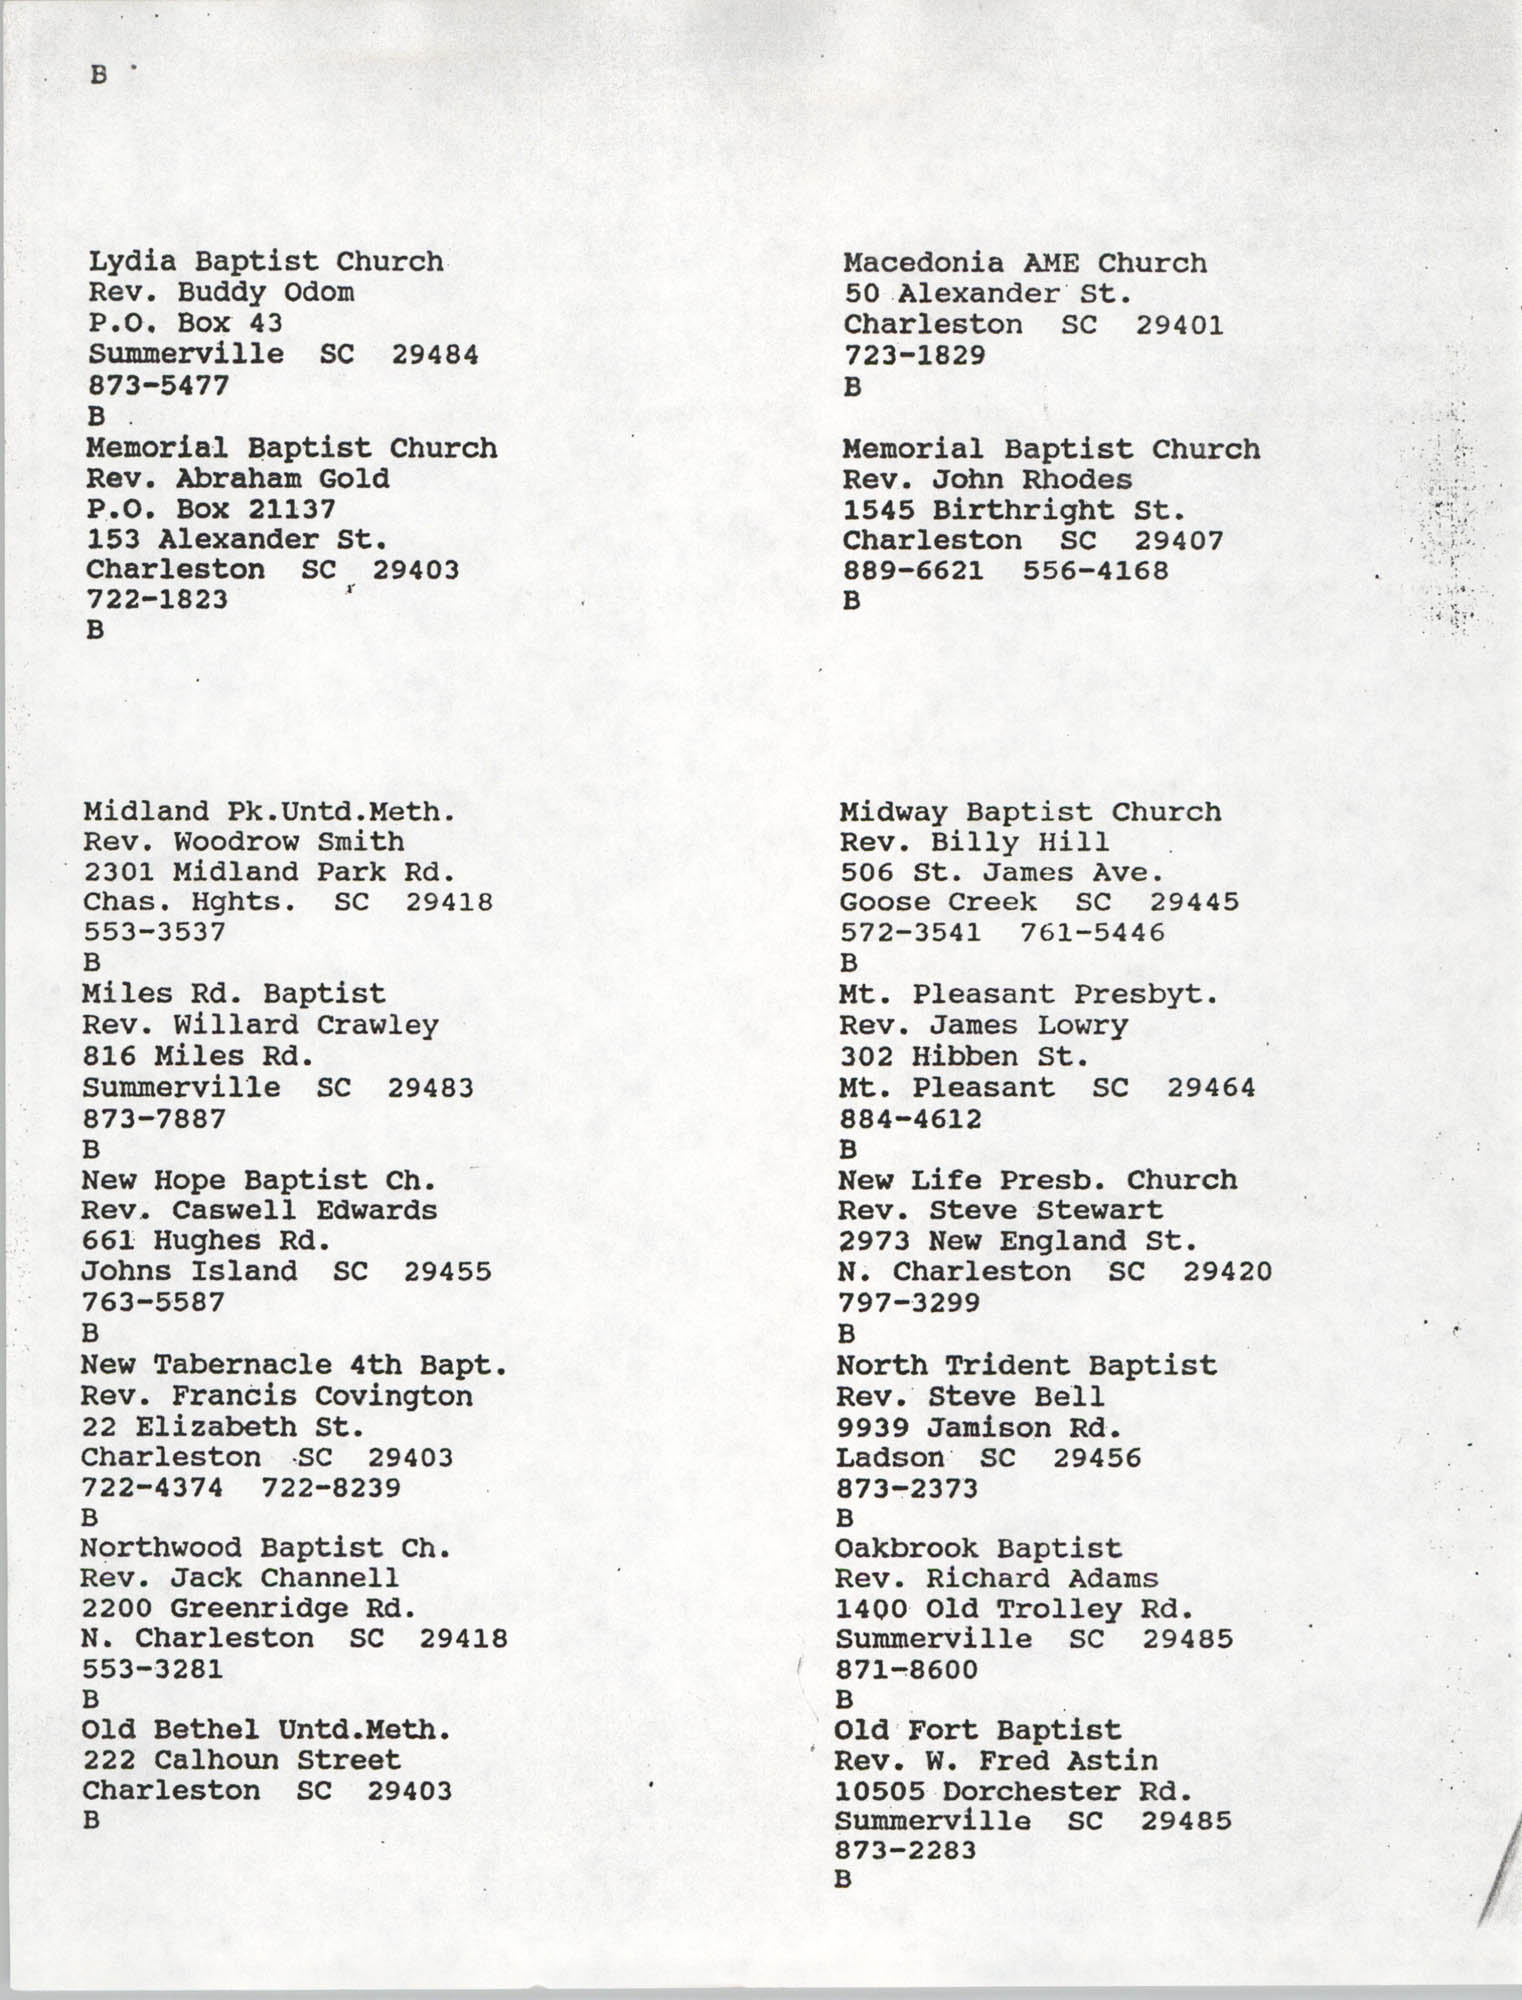 Church Contact List, Charleston Chapter of the NAACP, Page 11